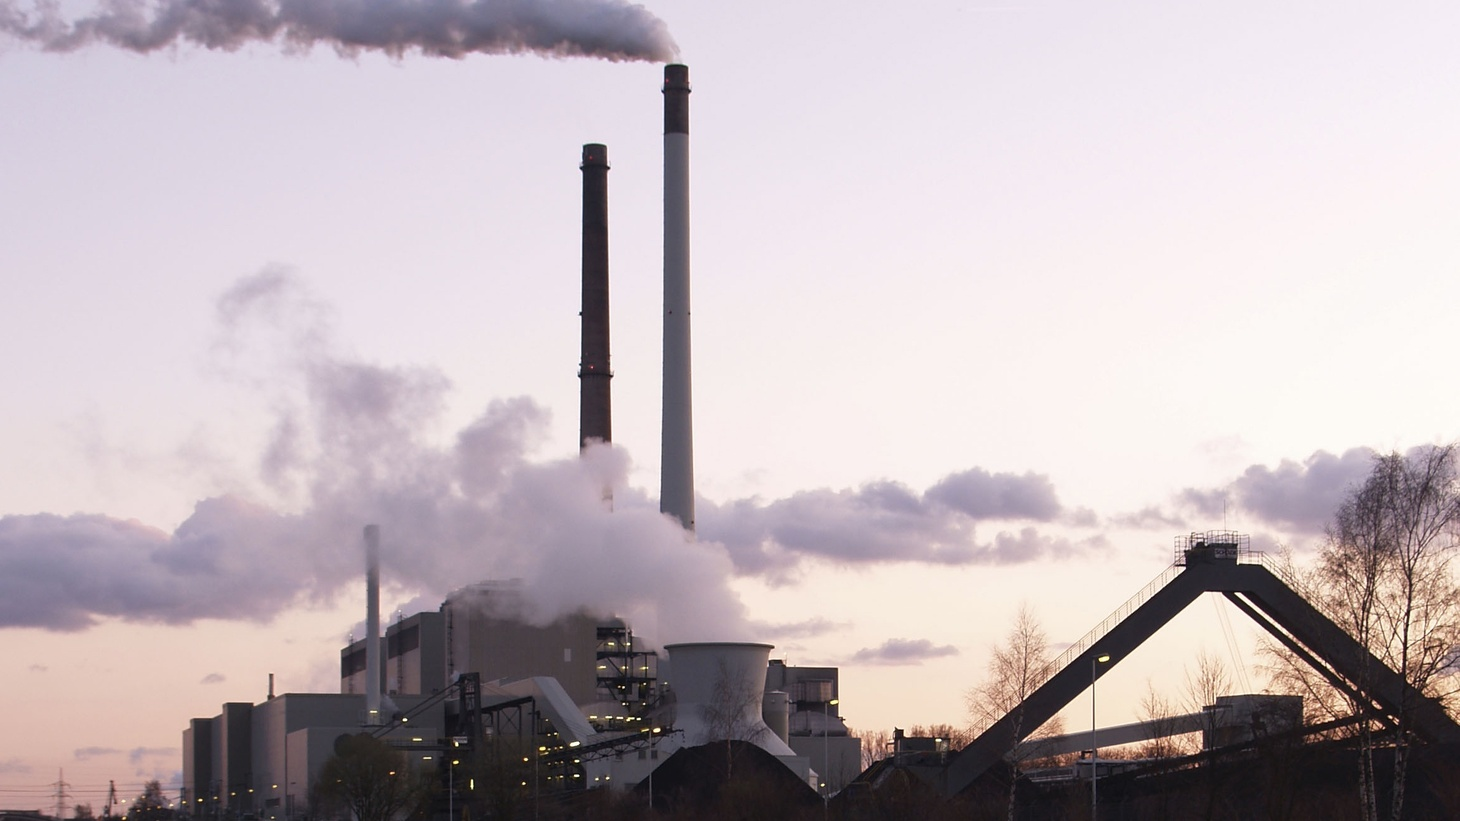 As the world prepares for the next climate change summit in Paris at the end of this year, conflicting court rulings demonstrate conflicting approaches toward the environment and global warming.